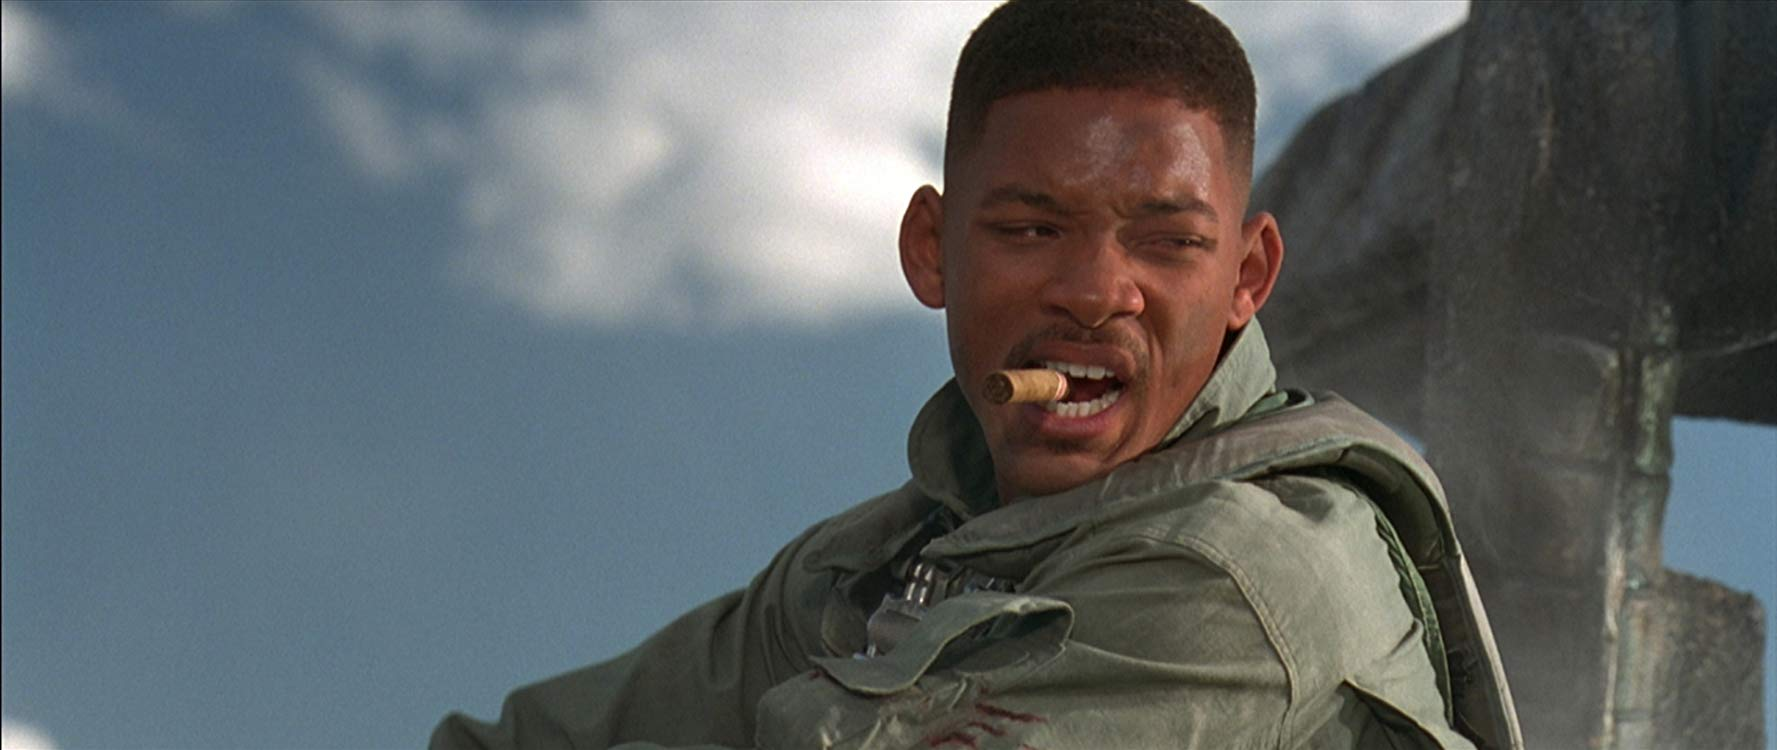 Will Smith sci-fi movies